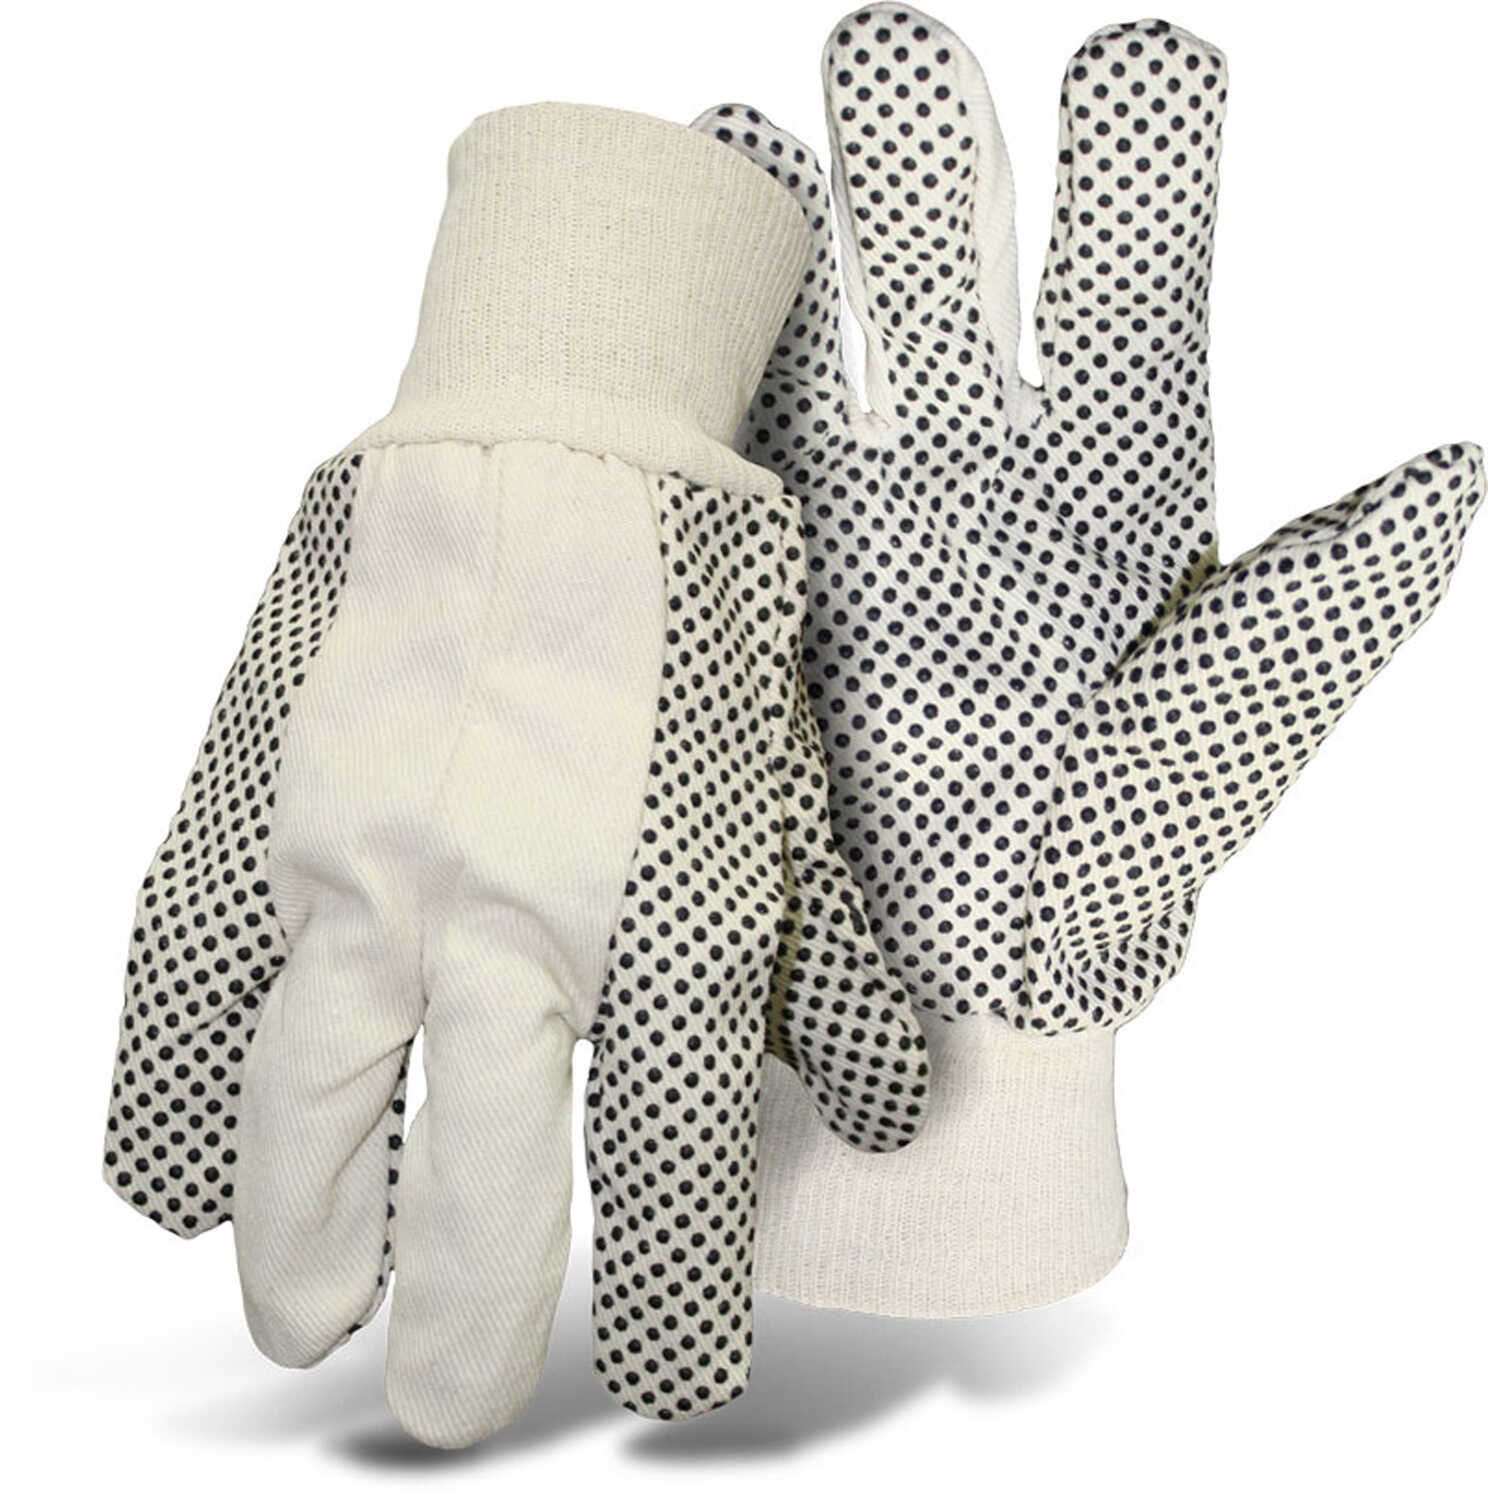 Boss  Men's  Indoor/Outdoor  Cotton/Polyester  Dotted  Work Gloves  White  L